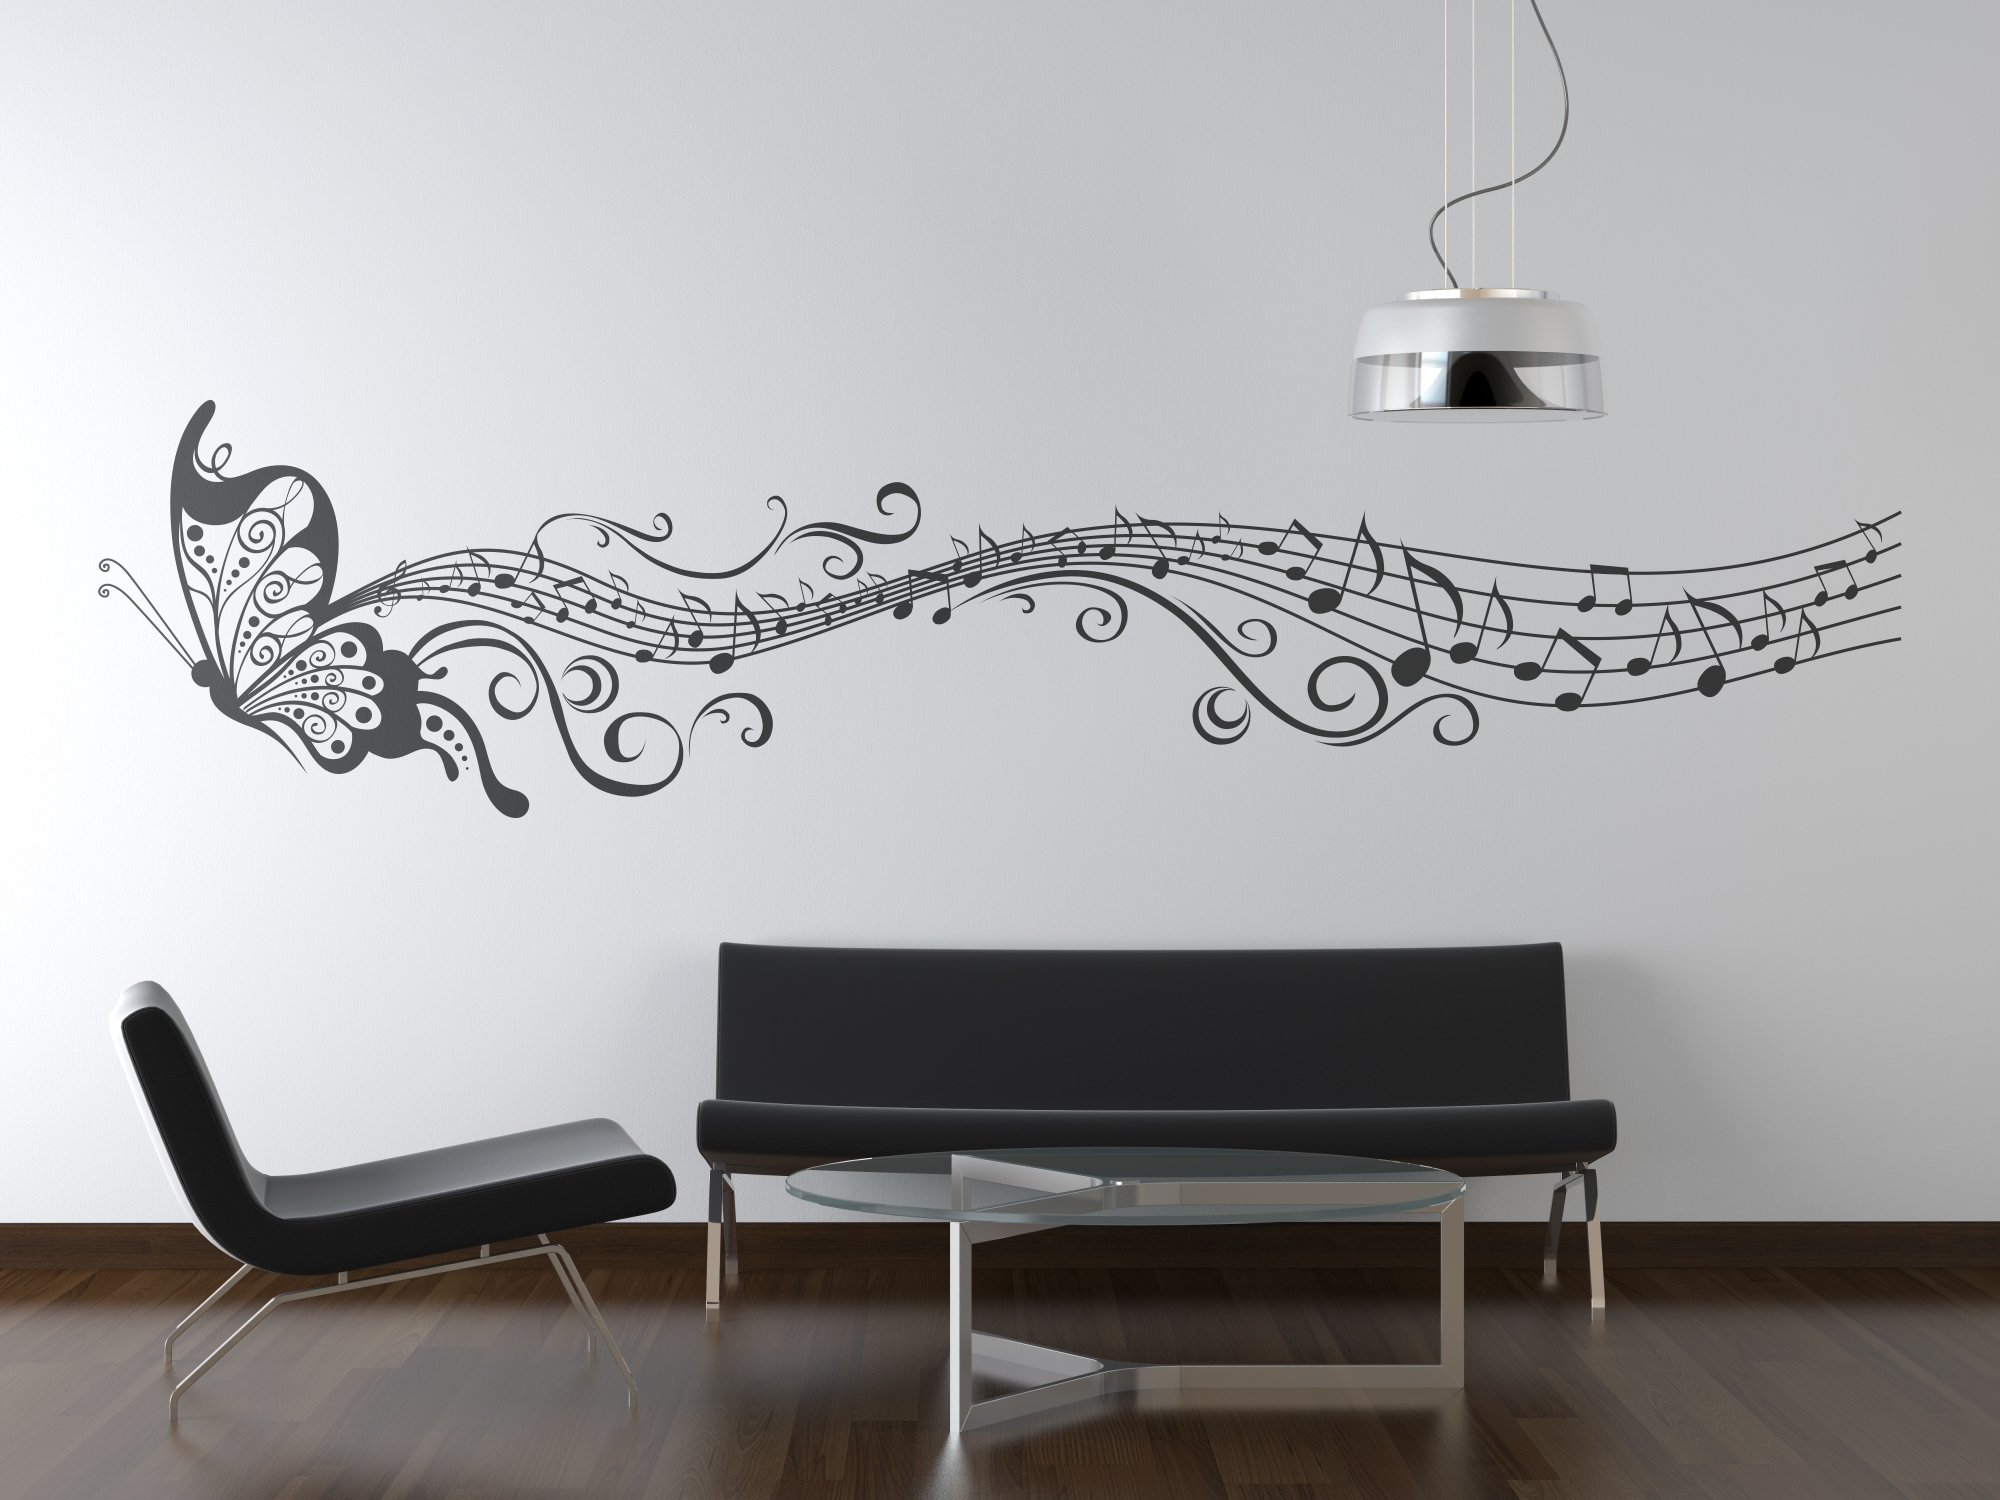 Vinilos decorativos con mariposas una tendencia al alza for Vinilos mariposas